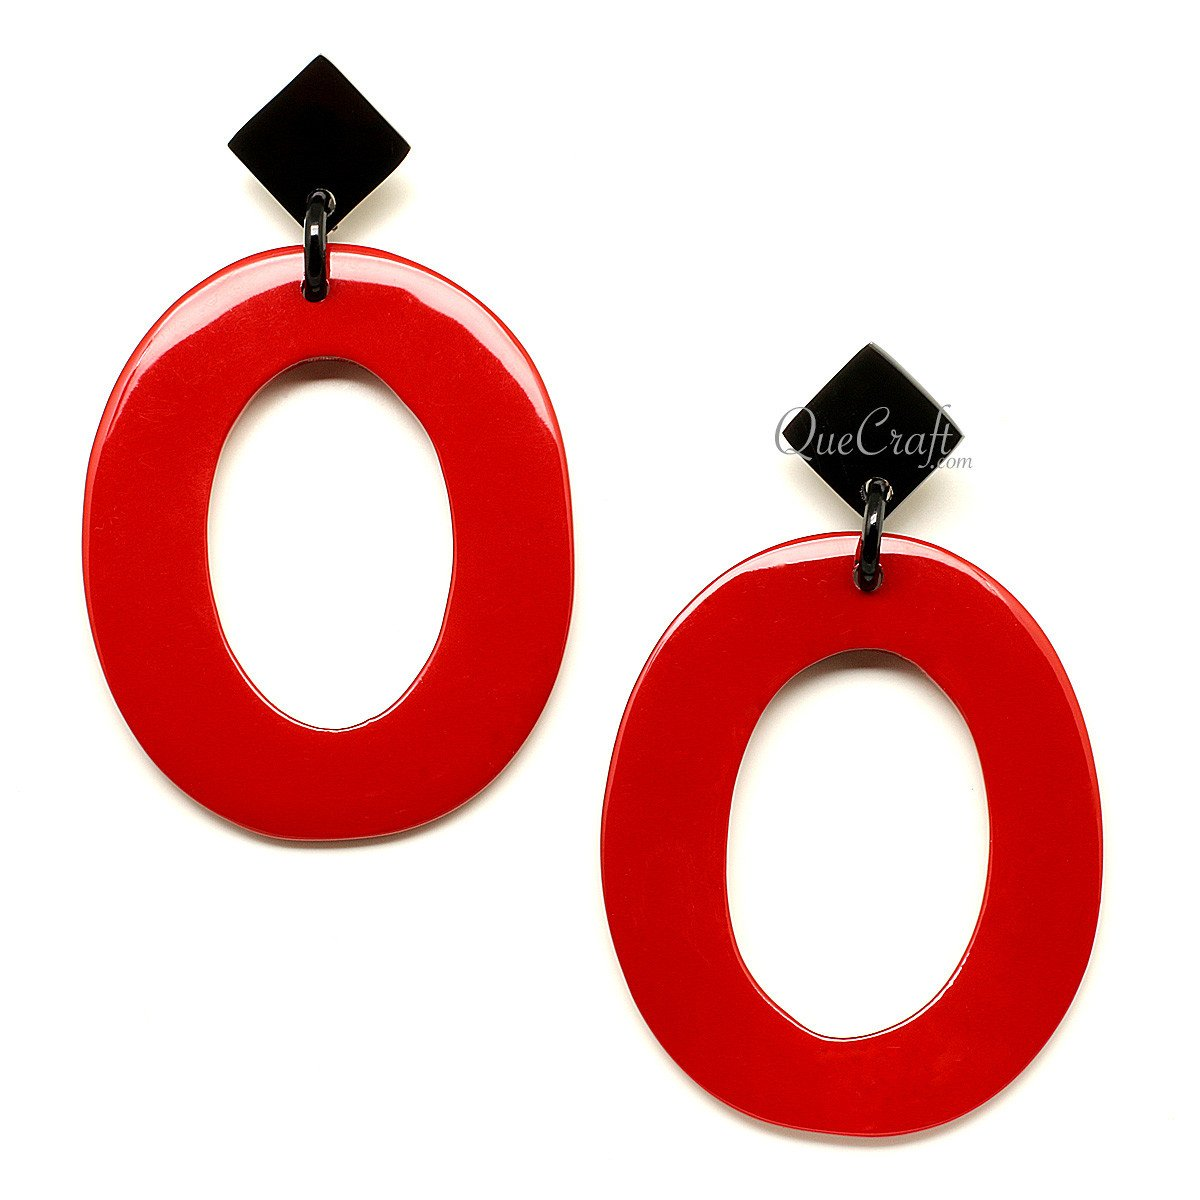 Horn & Lacquer Earrings #12197 - HORN.JEWELRY by QueCraft